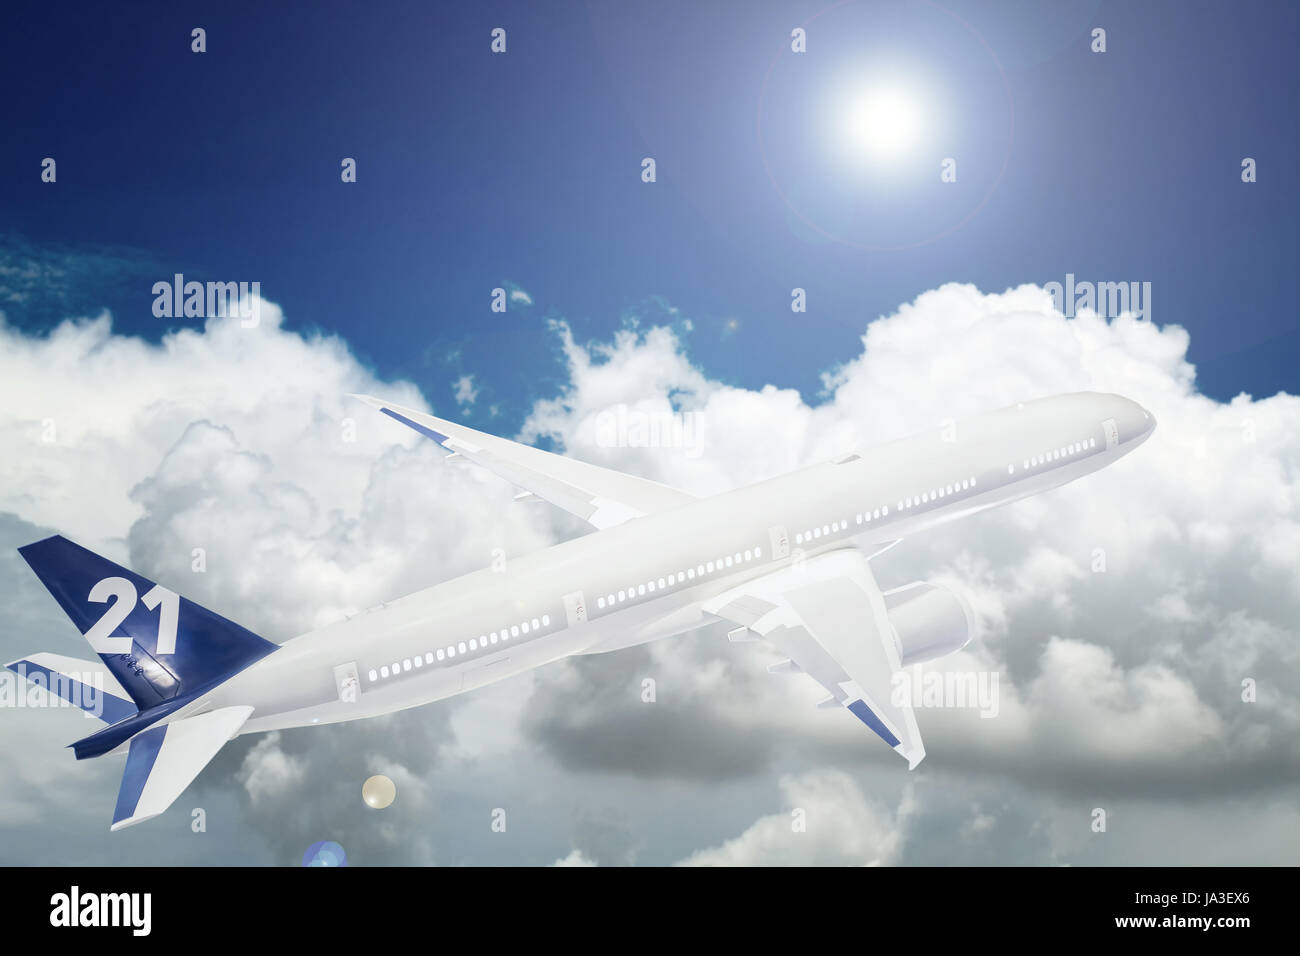 Aircraft is flying in blue cloudy sky - Stock Image